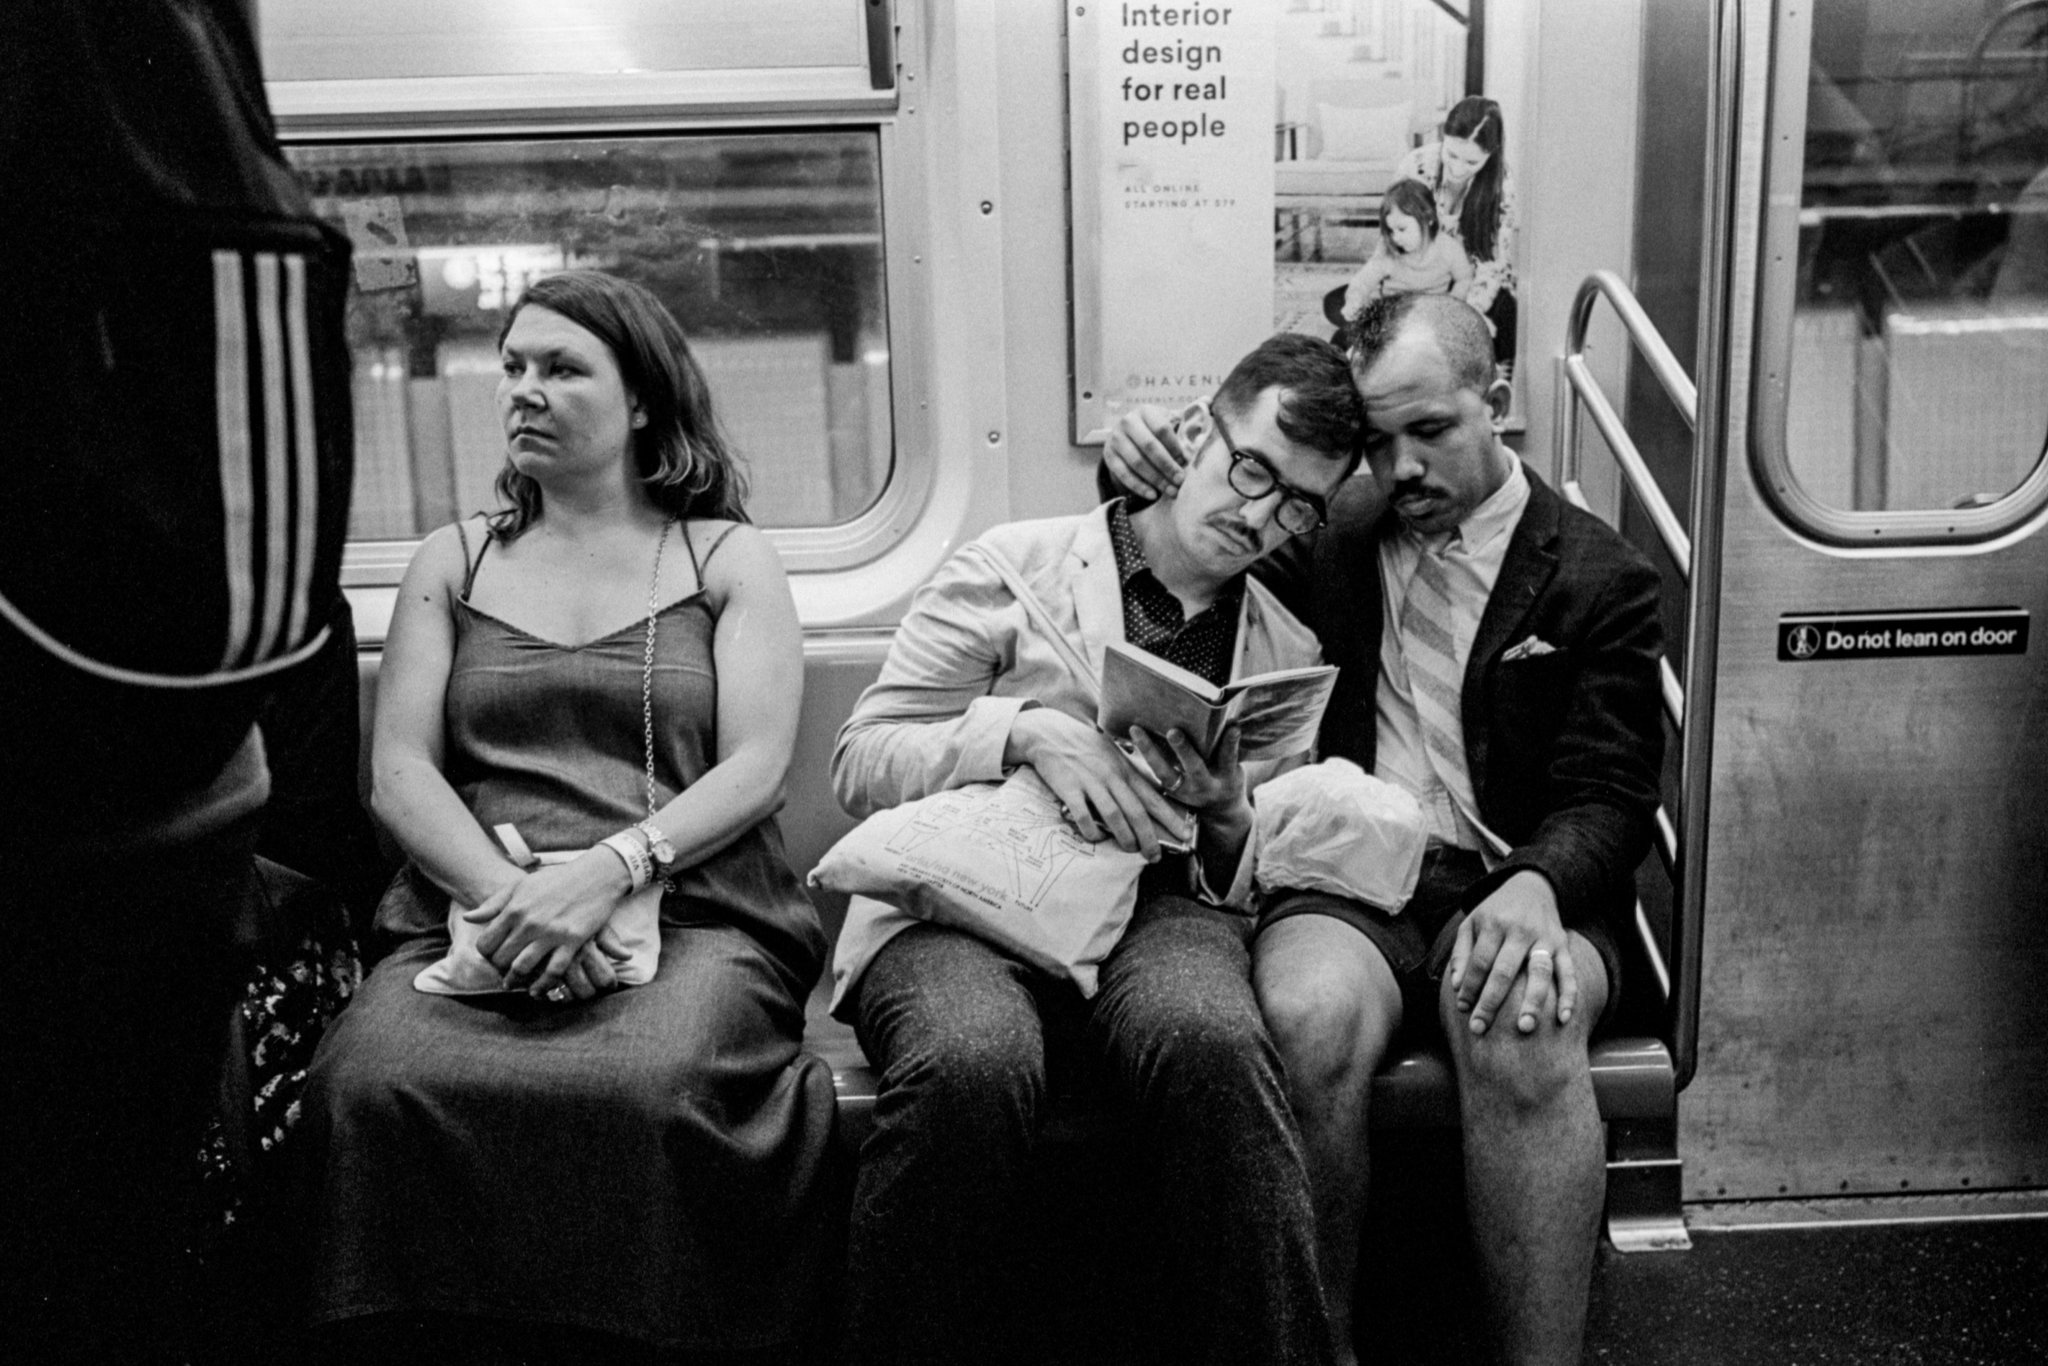 """I just love the way they're just kind of embracing in this open romance in the subway as he's reading this book,"" Mr. Wagner said. ""It almost looks like they're reading it together.""  (image via Andre D. Wagner for The New York Times)"